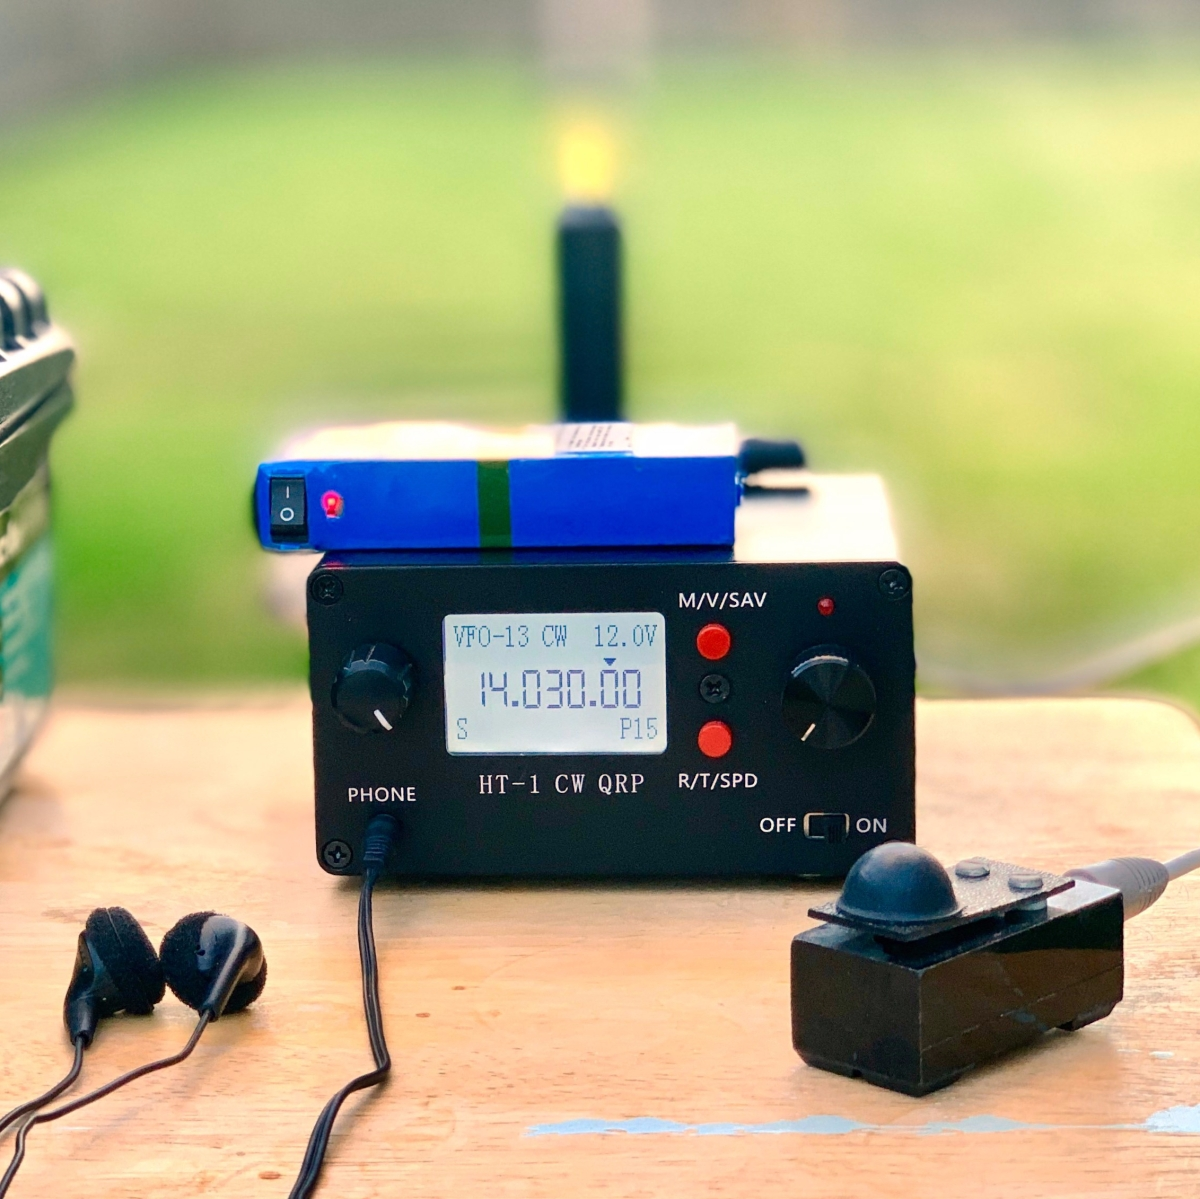 HT-1A Dual Band CW QRP Ham Radio Transceiver – The Tech Examiner